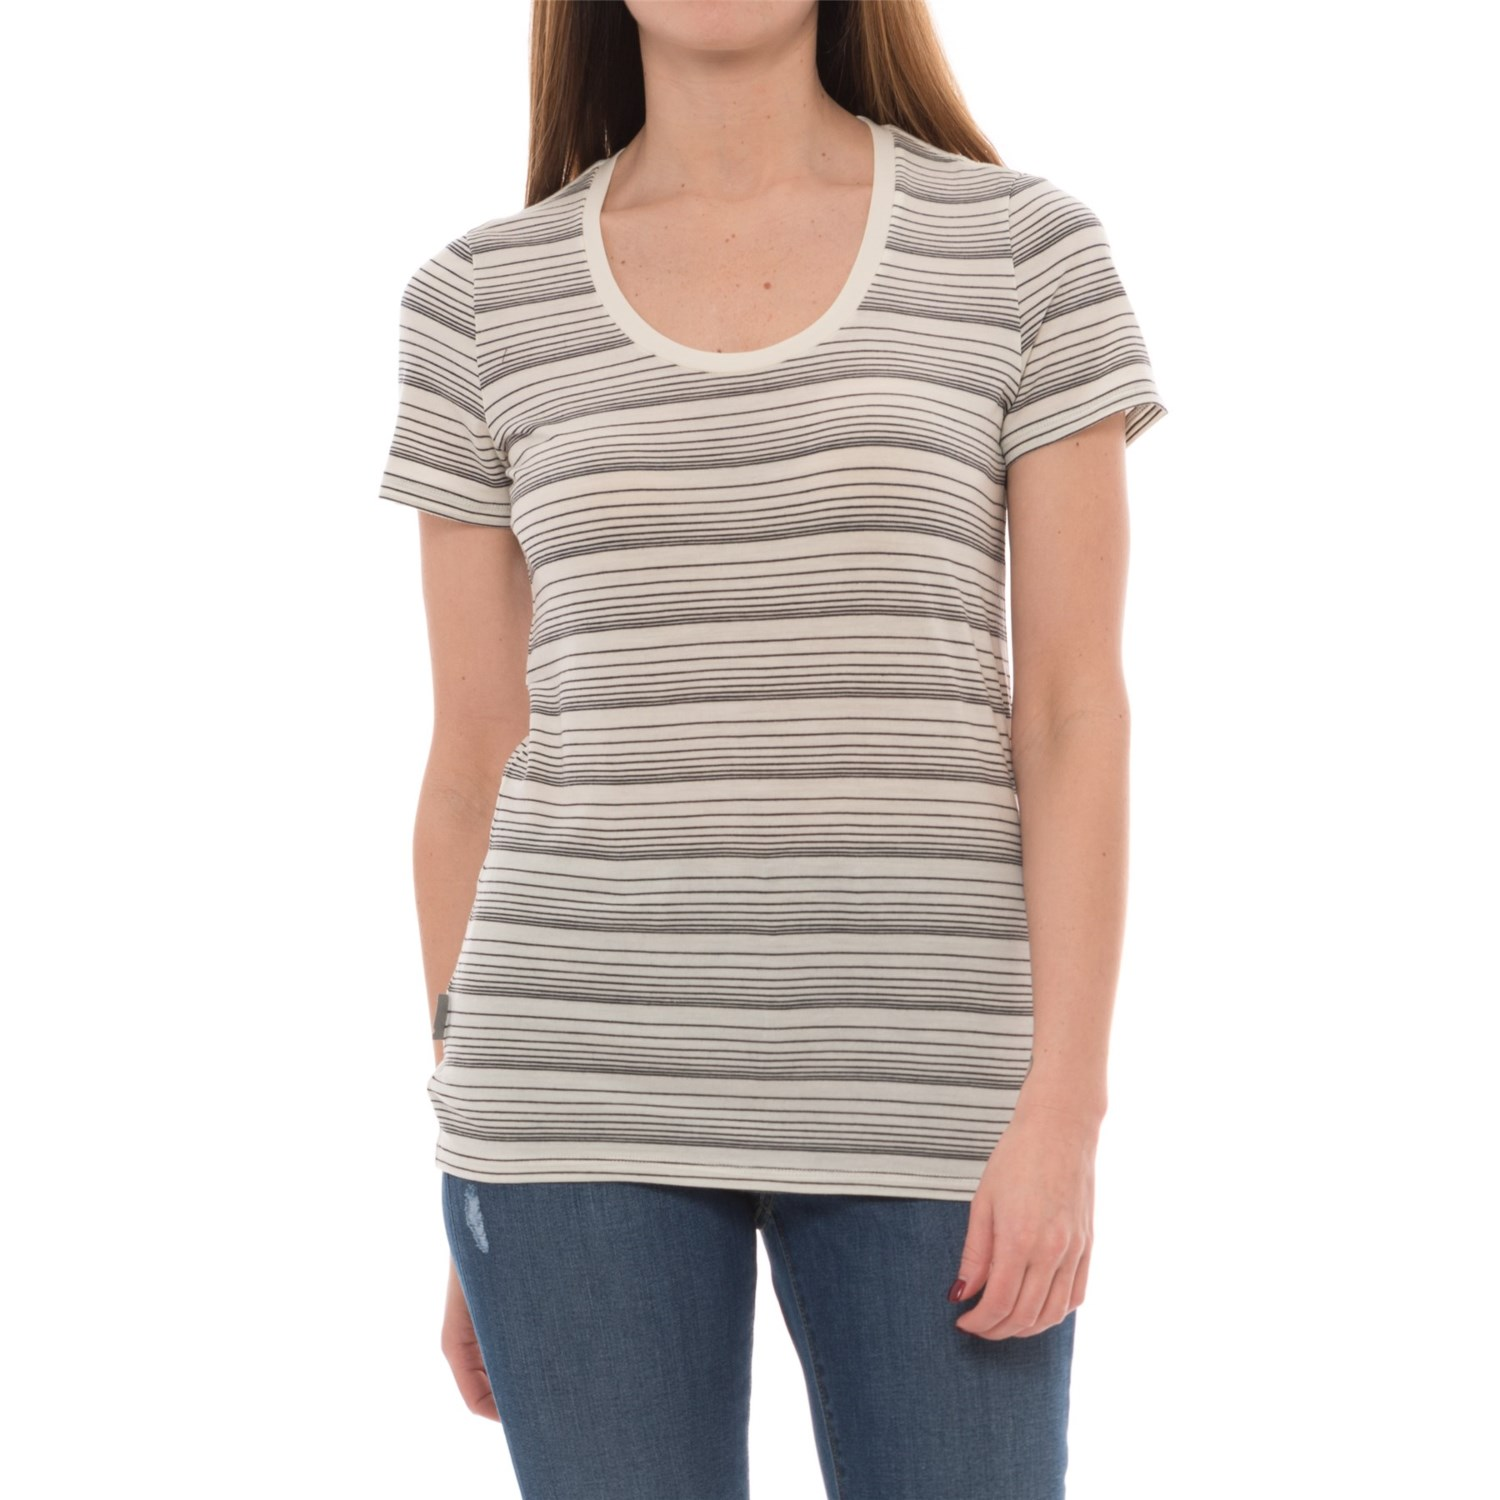 Icebreaker tech lite stripe t shirt for women save 46 for Merino wool shirts for travel